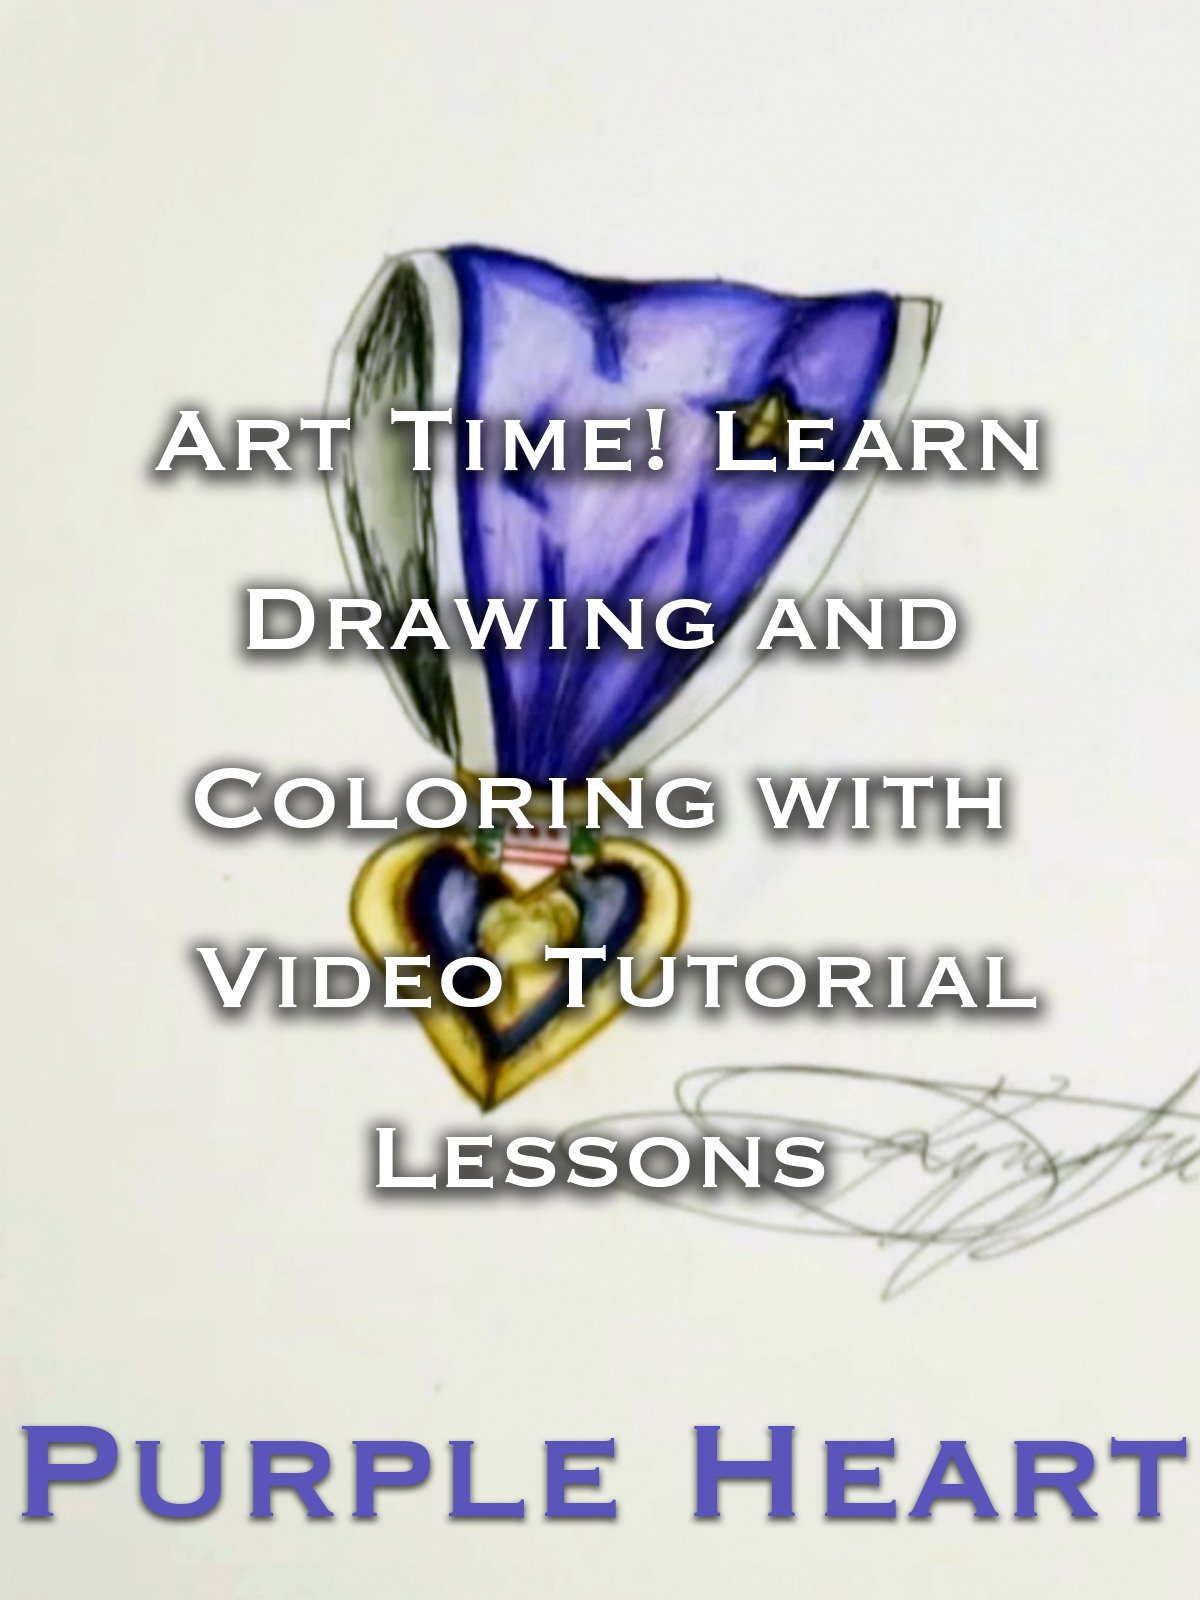 Art Time! Learn Drawing and Coloring with Video Tutorial Lessons Purple Heart